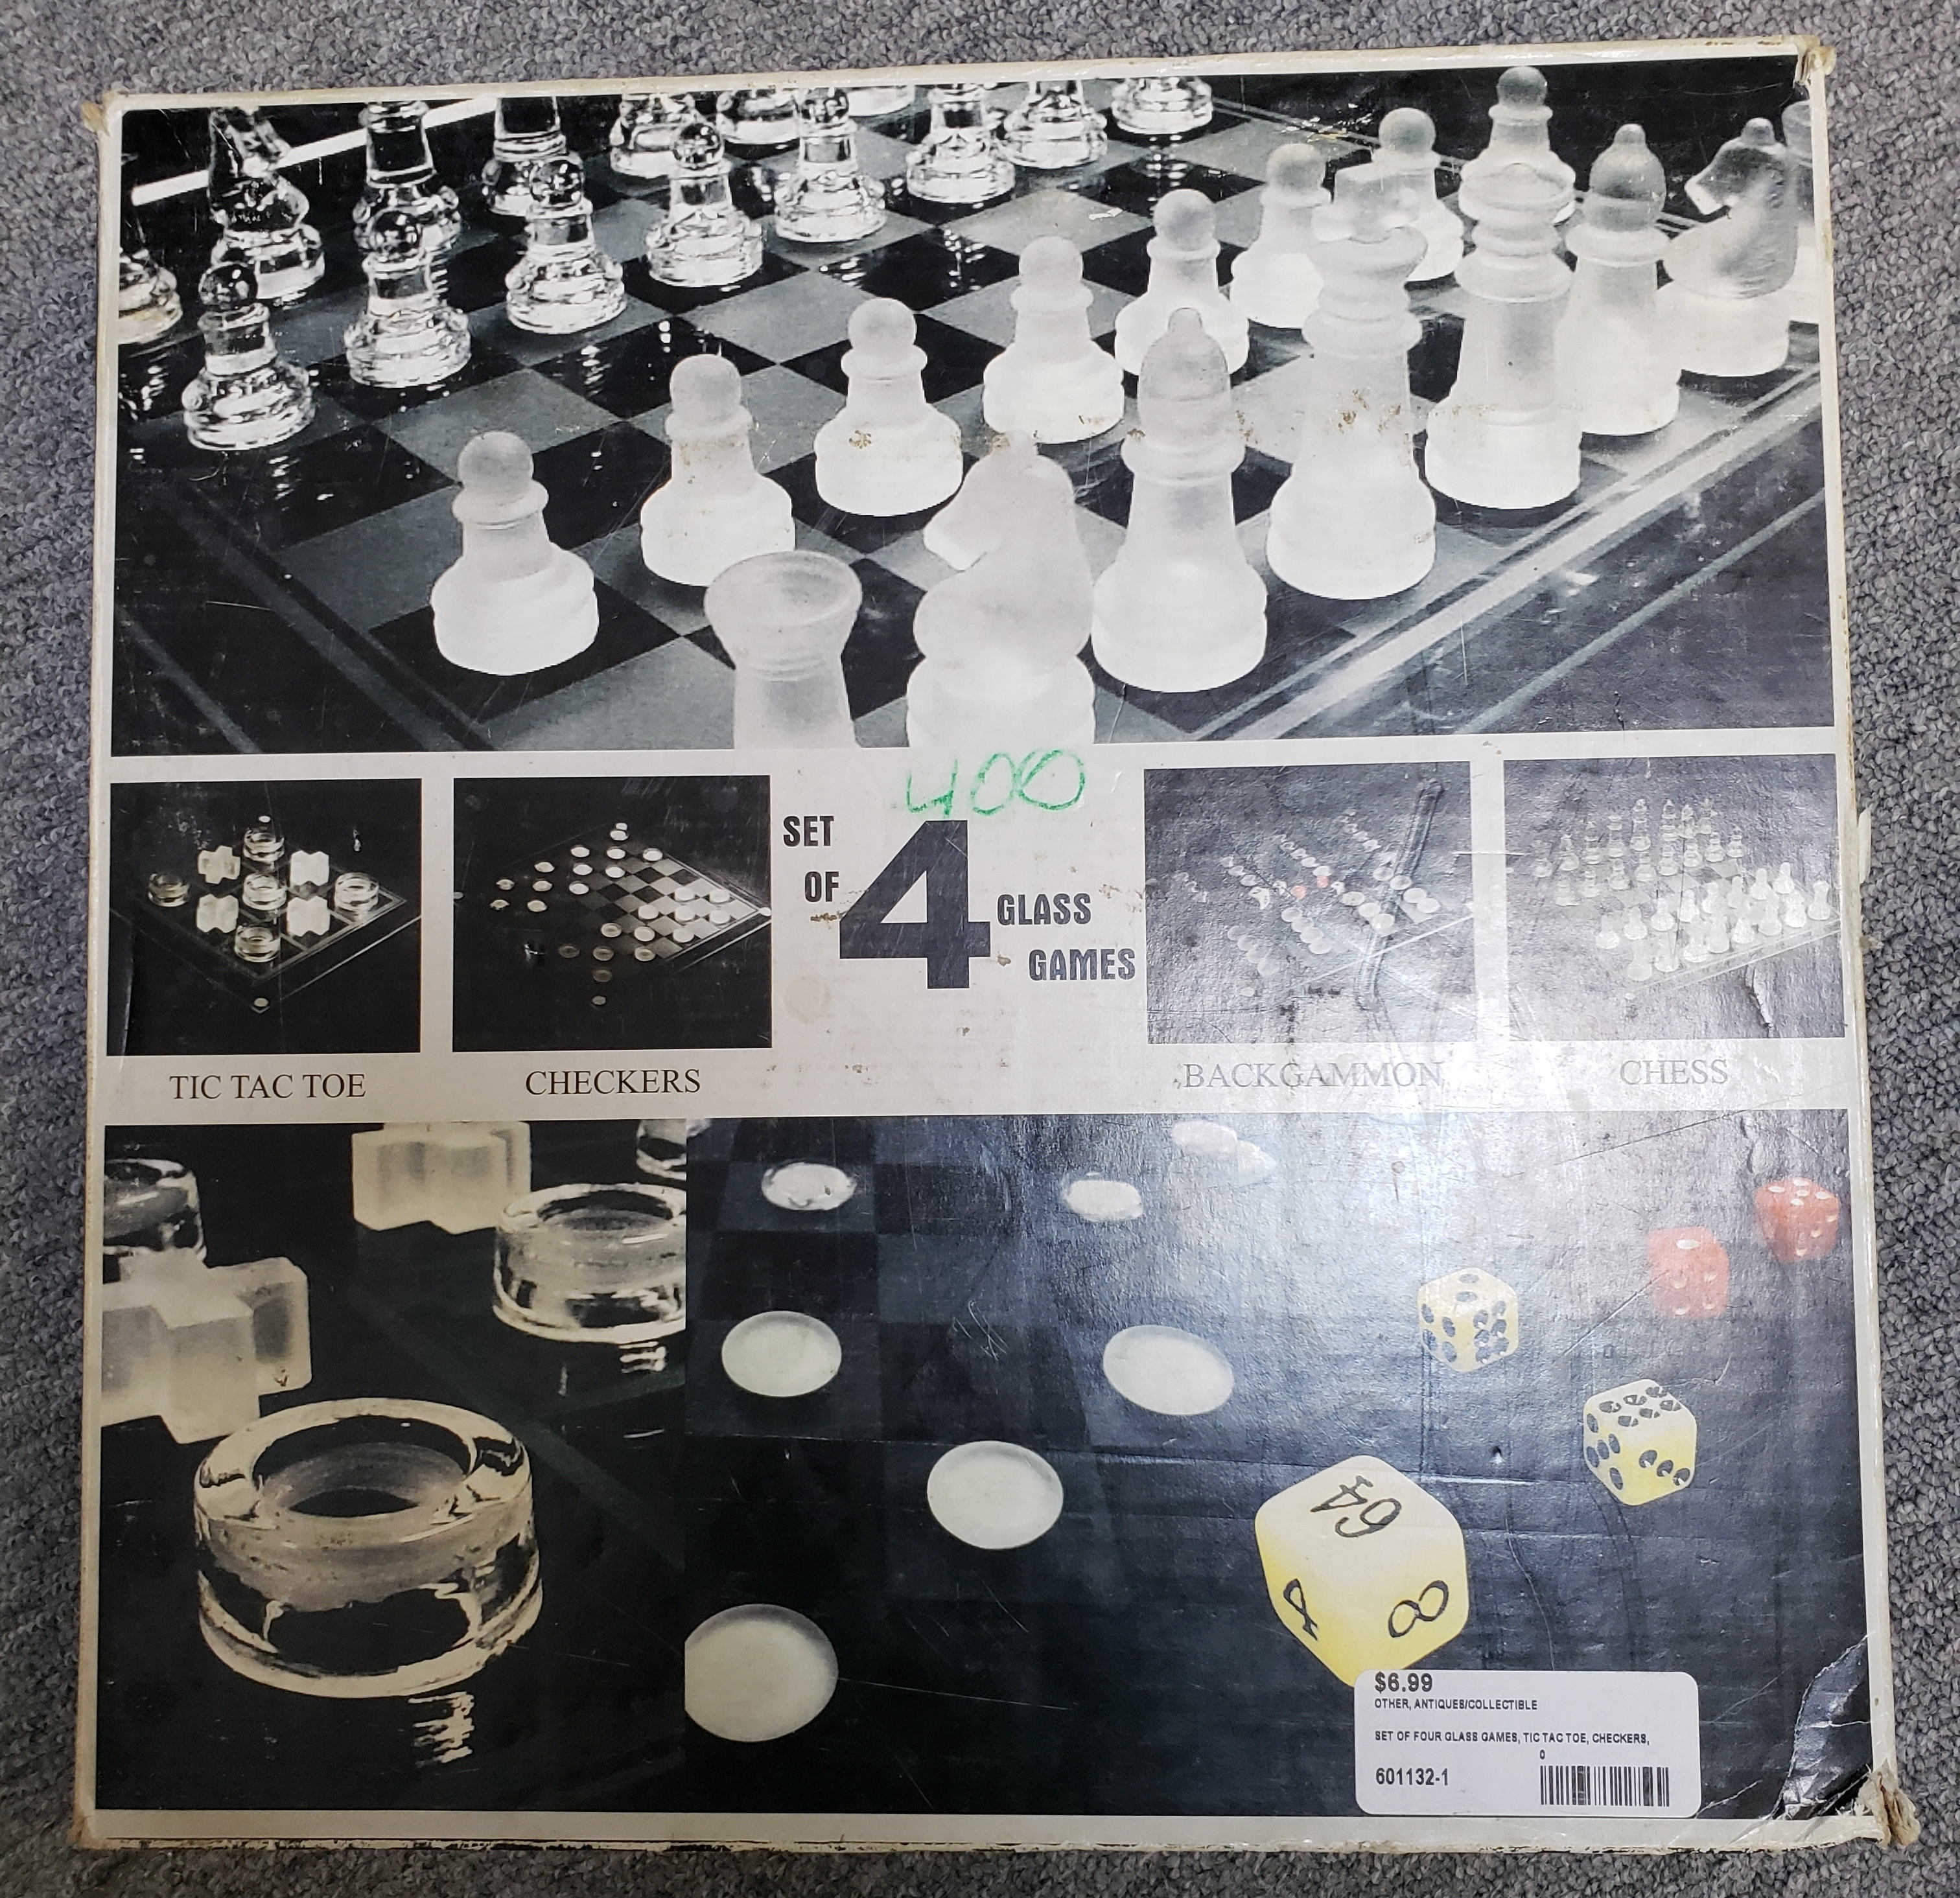 SET OF FOUR GLASS GAMES; TIC TAC TO, CHECKERS, BACKGAMMON, & CHESS